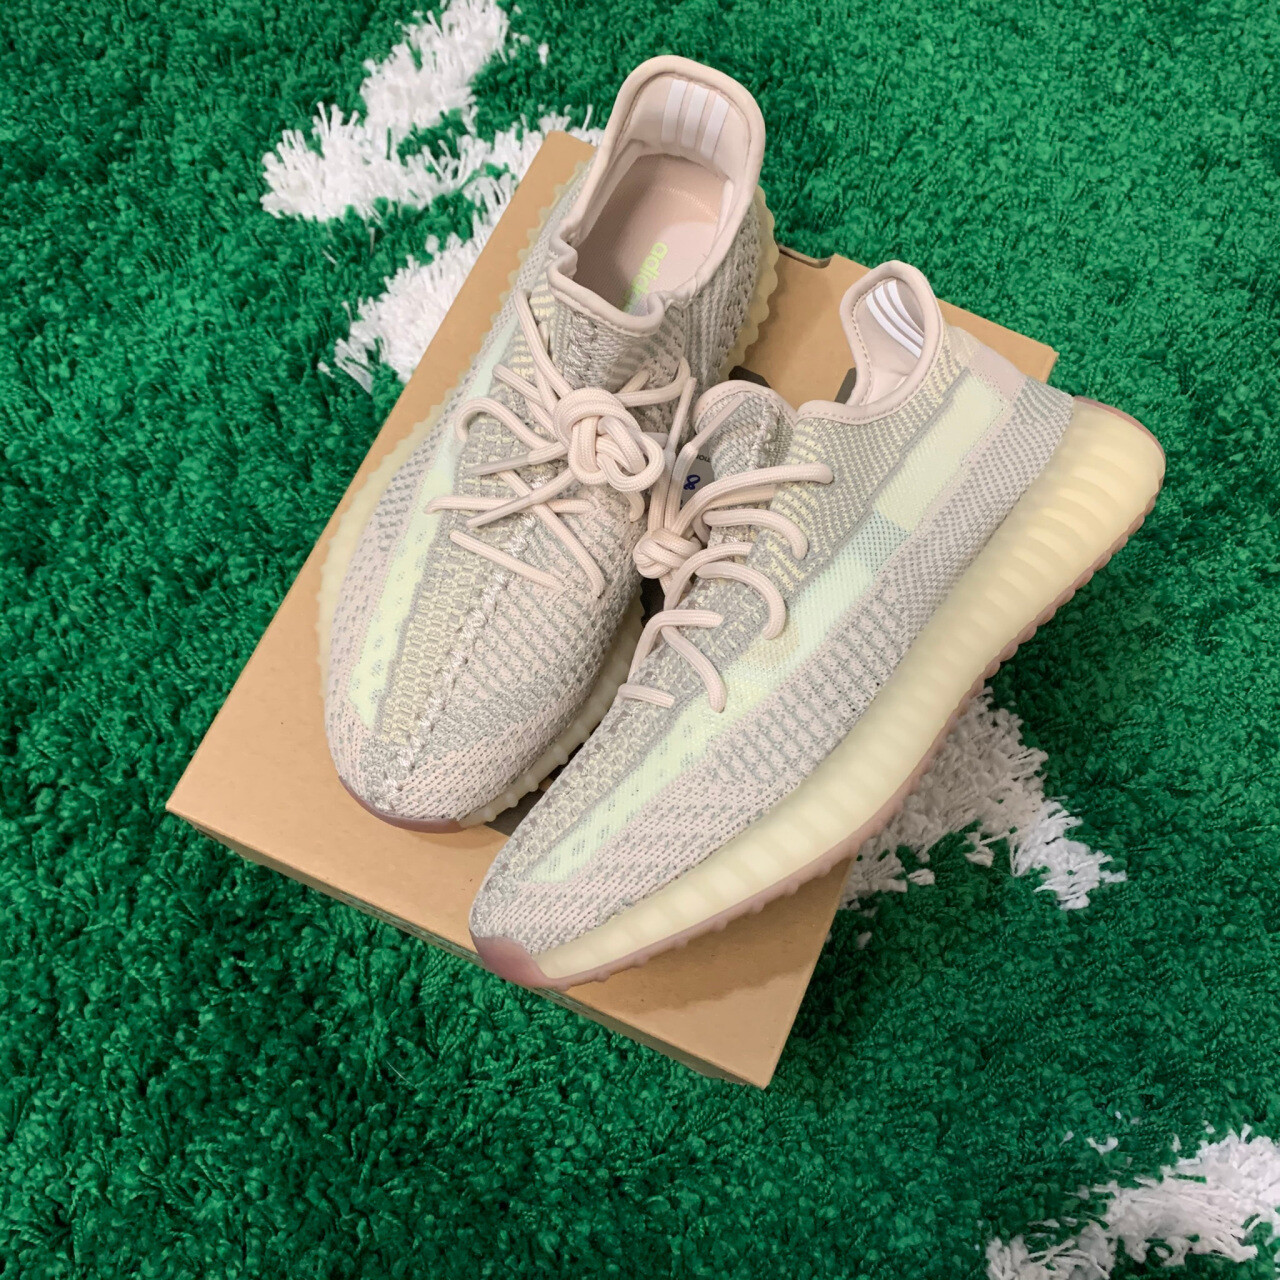 Adidas Yeezy Boost 350 v2 Citrin Size 8.5